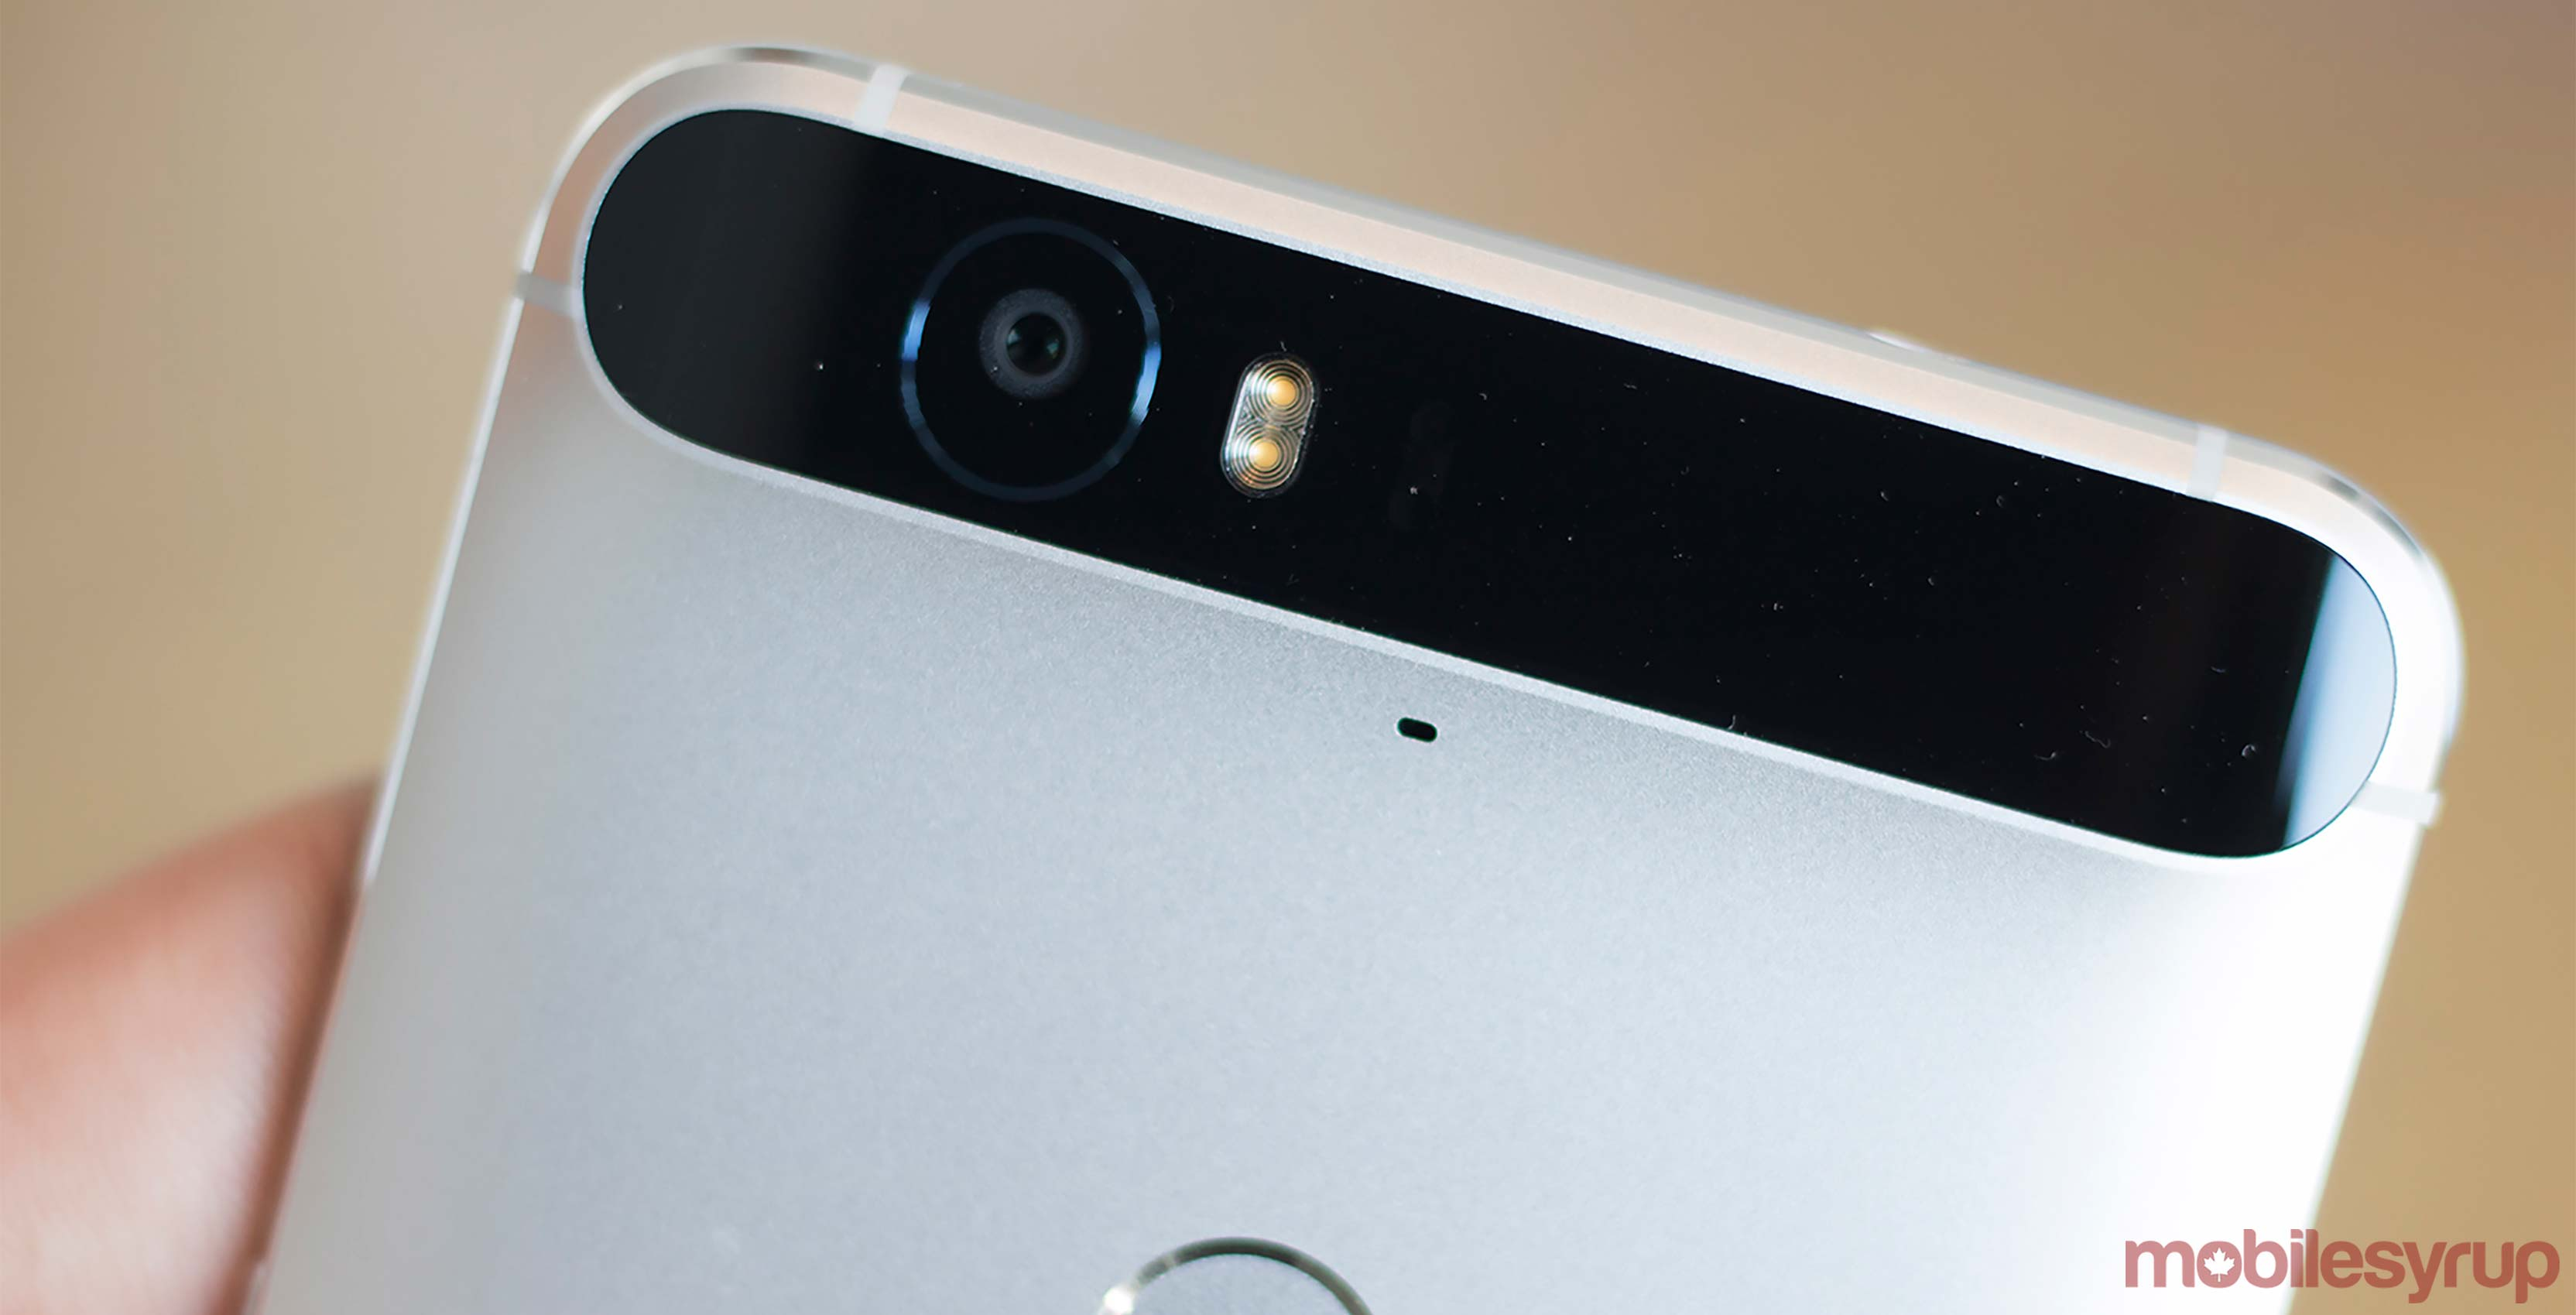 Back of Google Nexus 6P smartphone